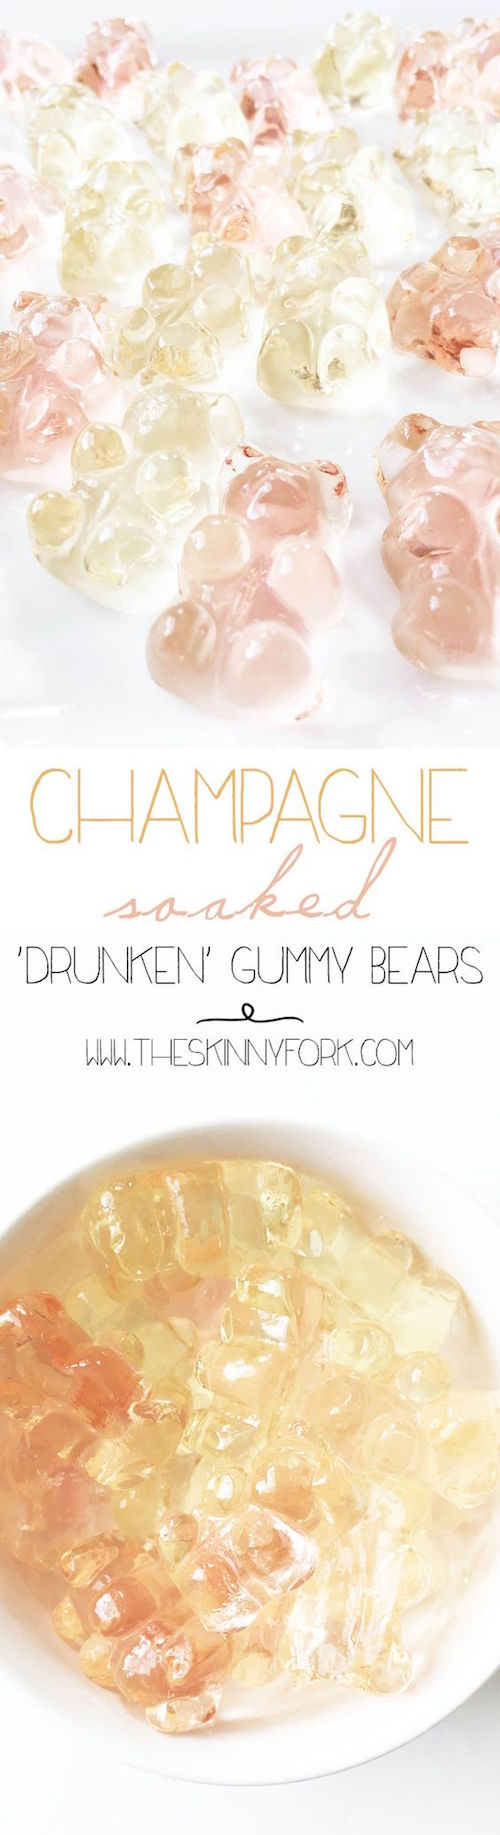 Who would have thought Gummy bears could be soaked in champagne? By The Skinny Fork.